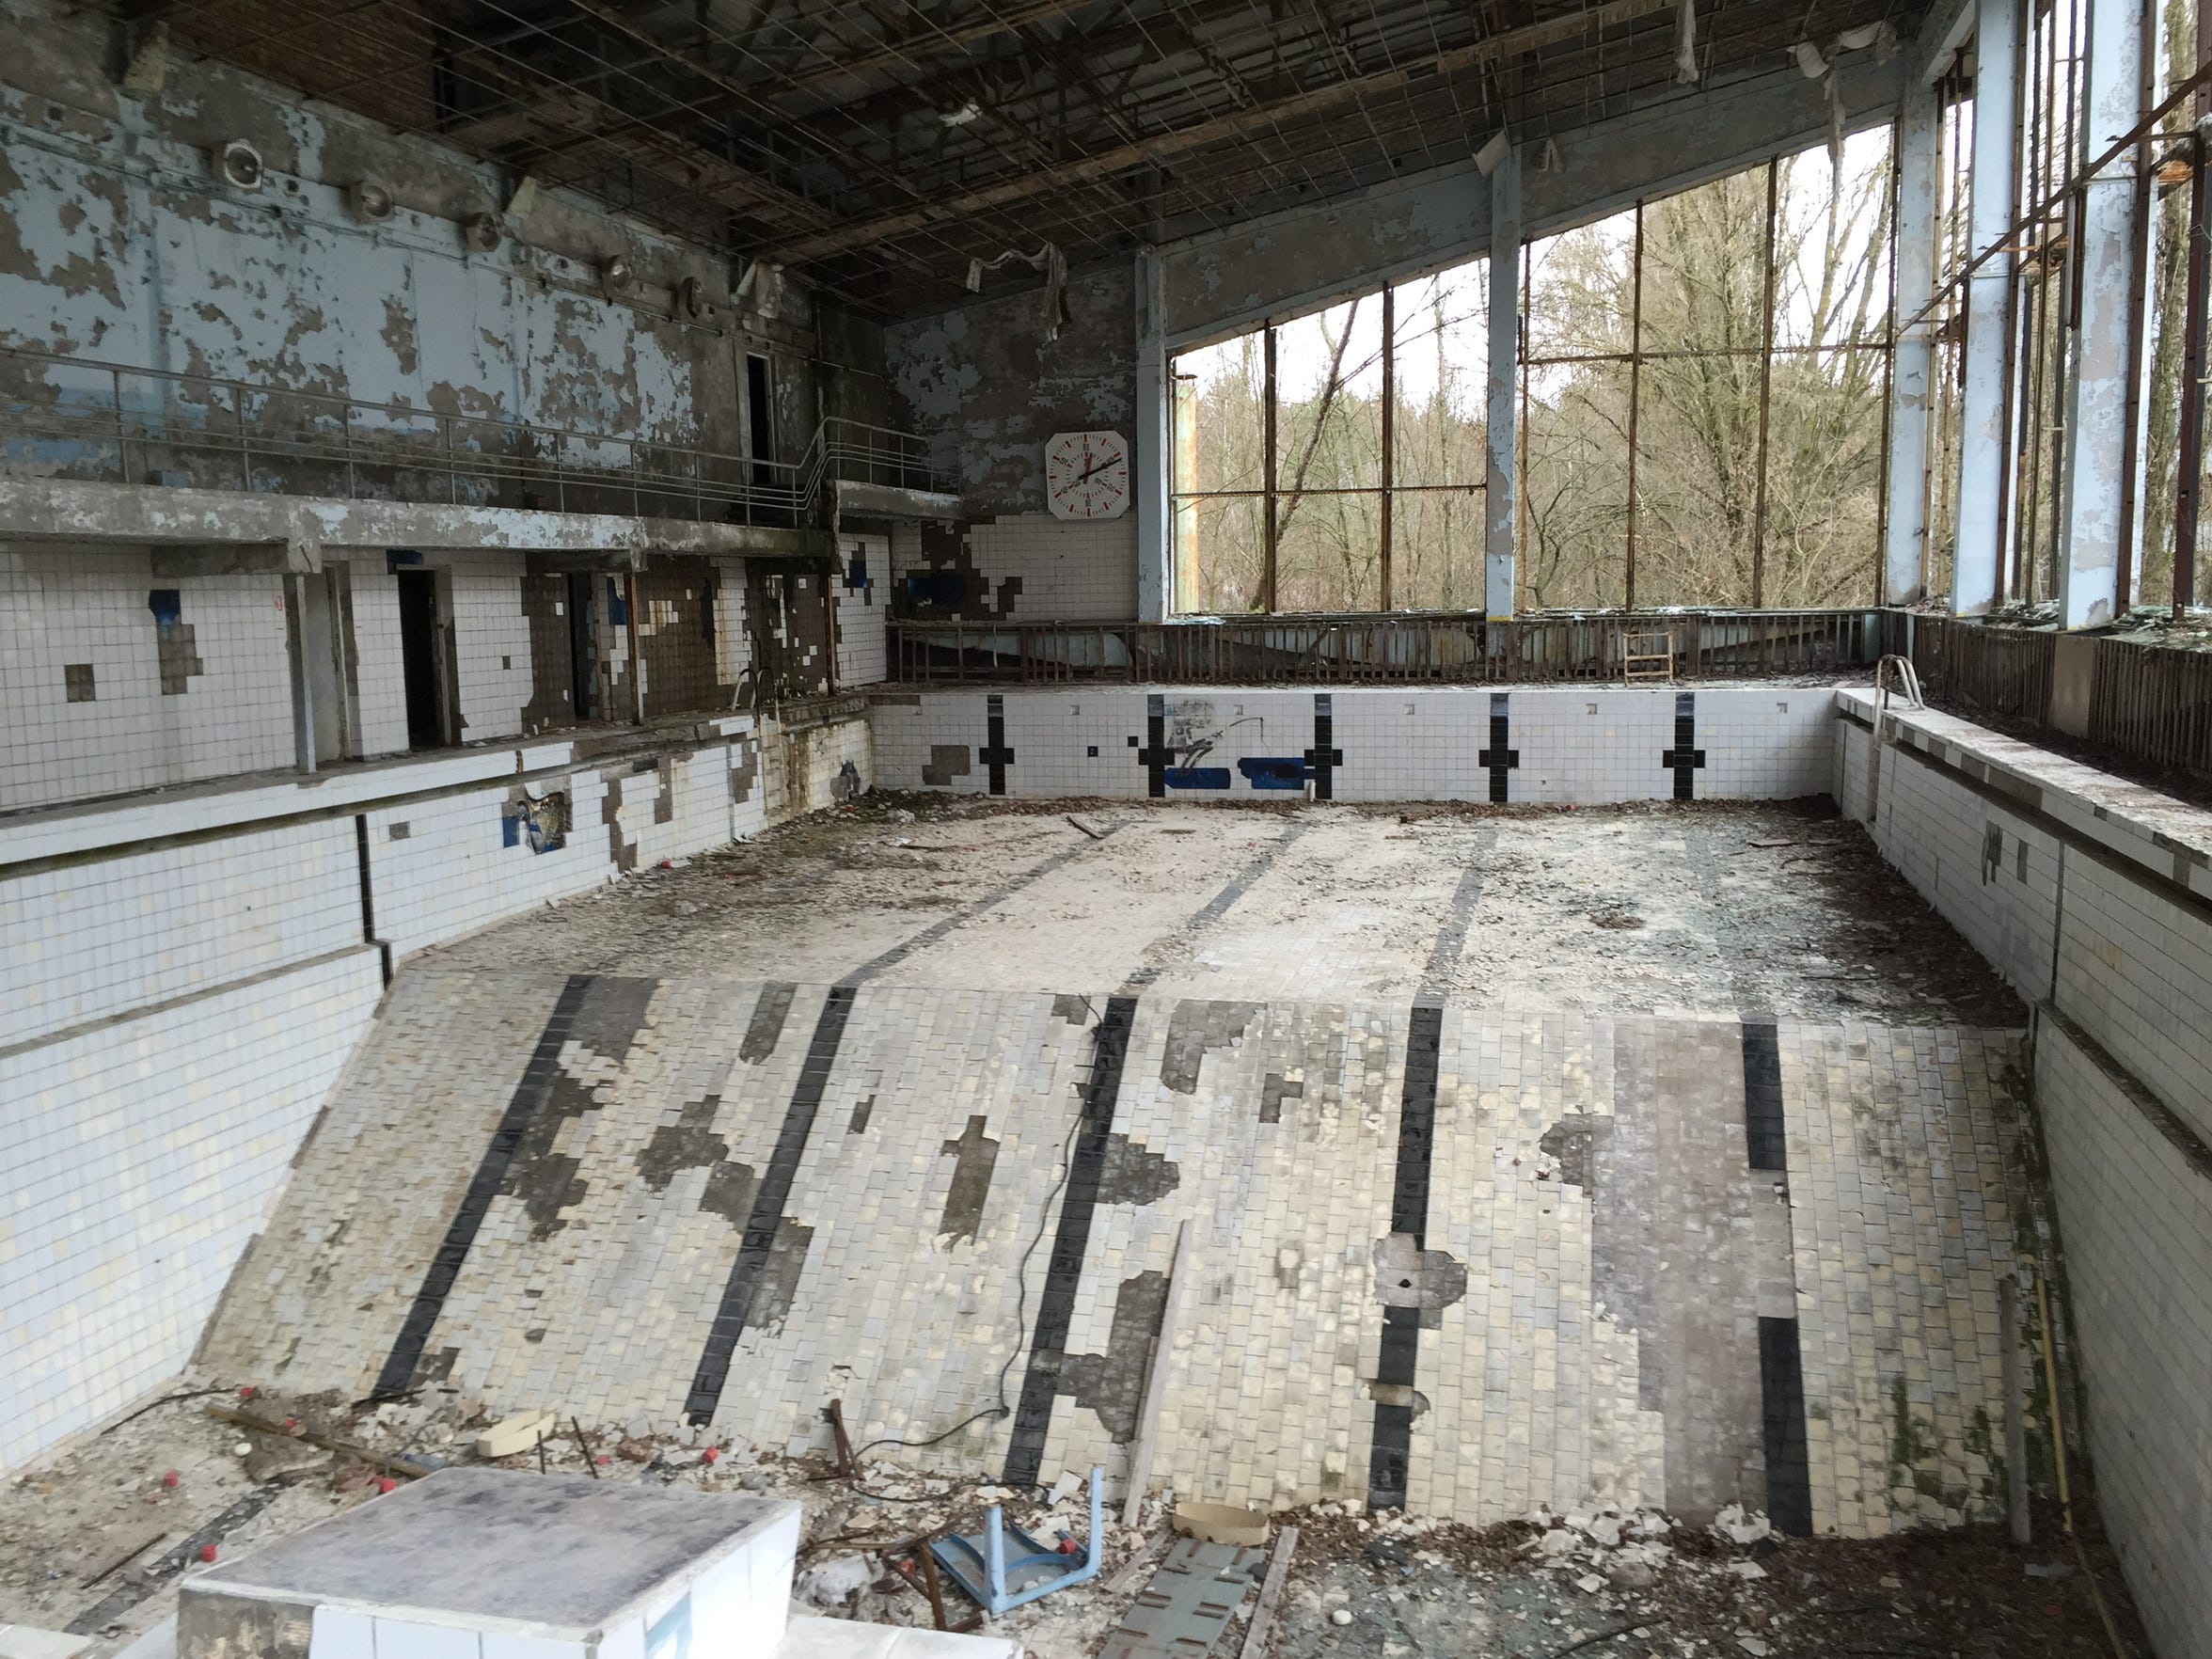 A swimming pool in Pripyat, Ukraine. More than a decade